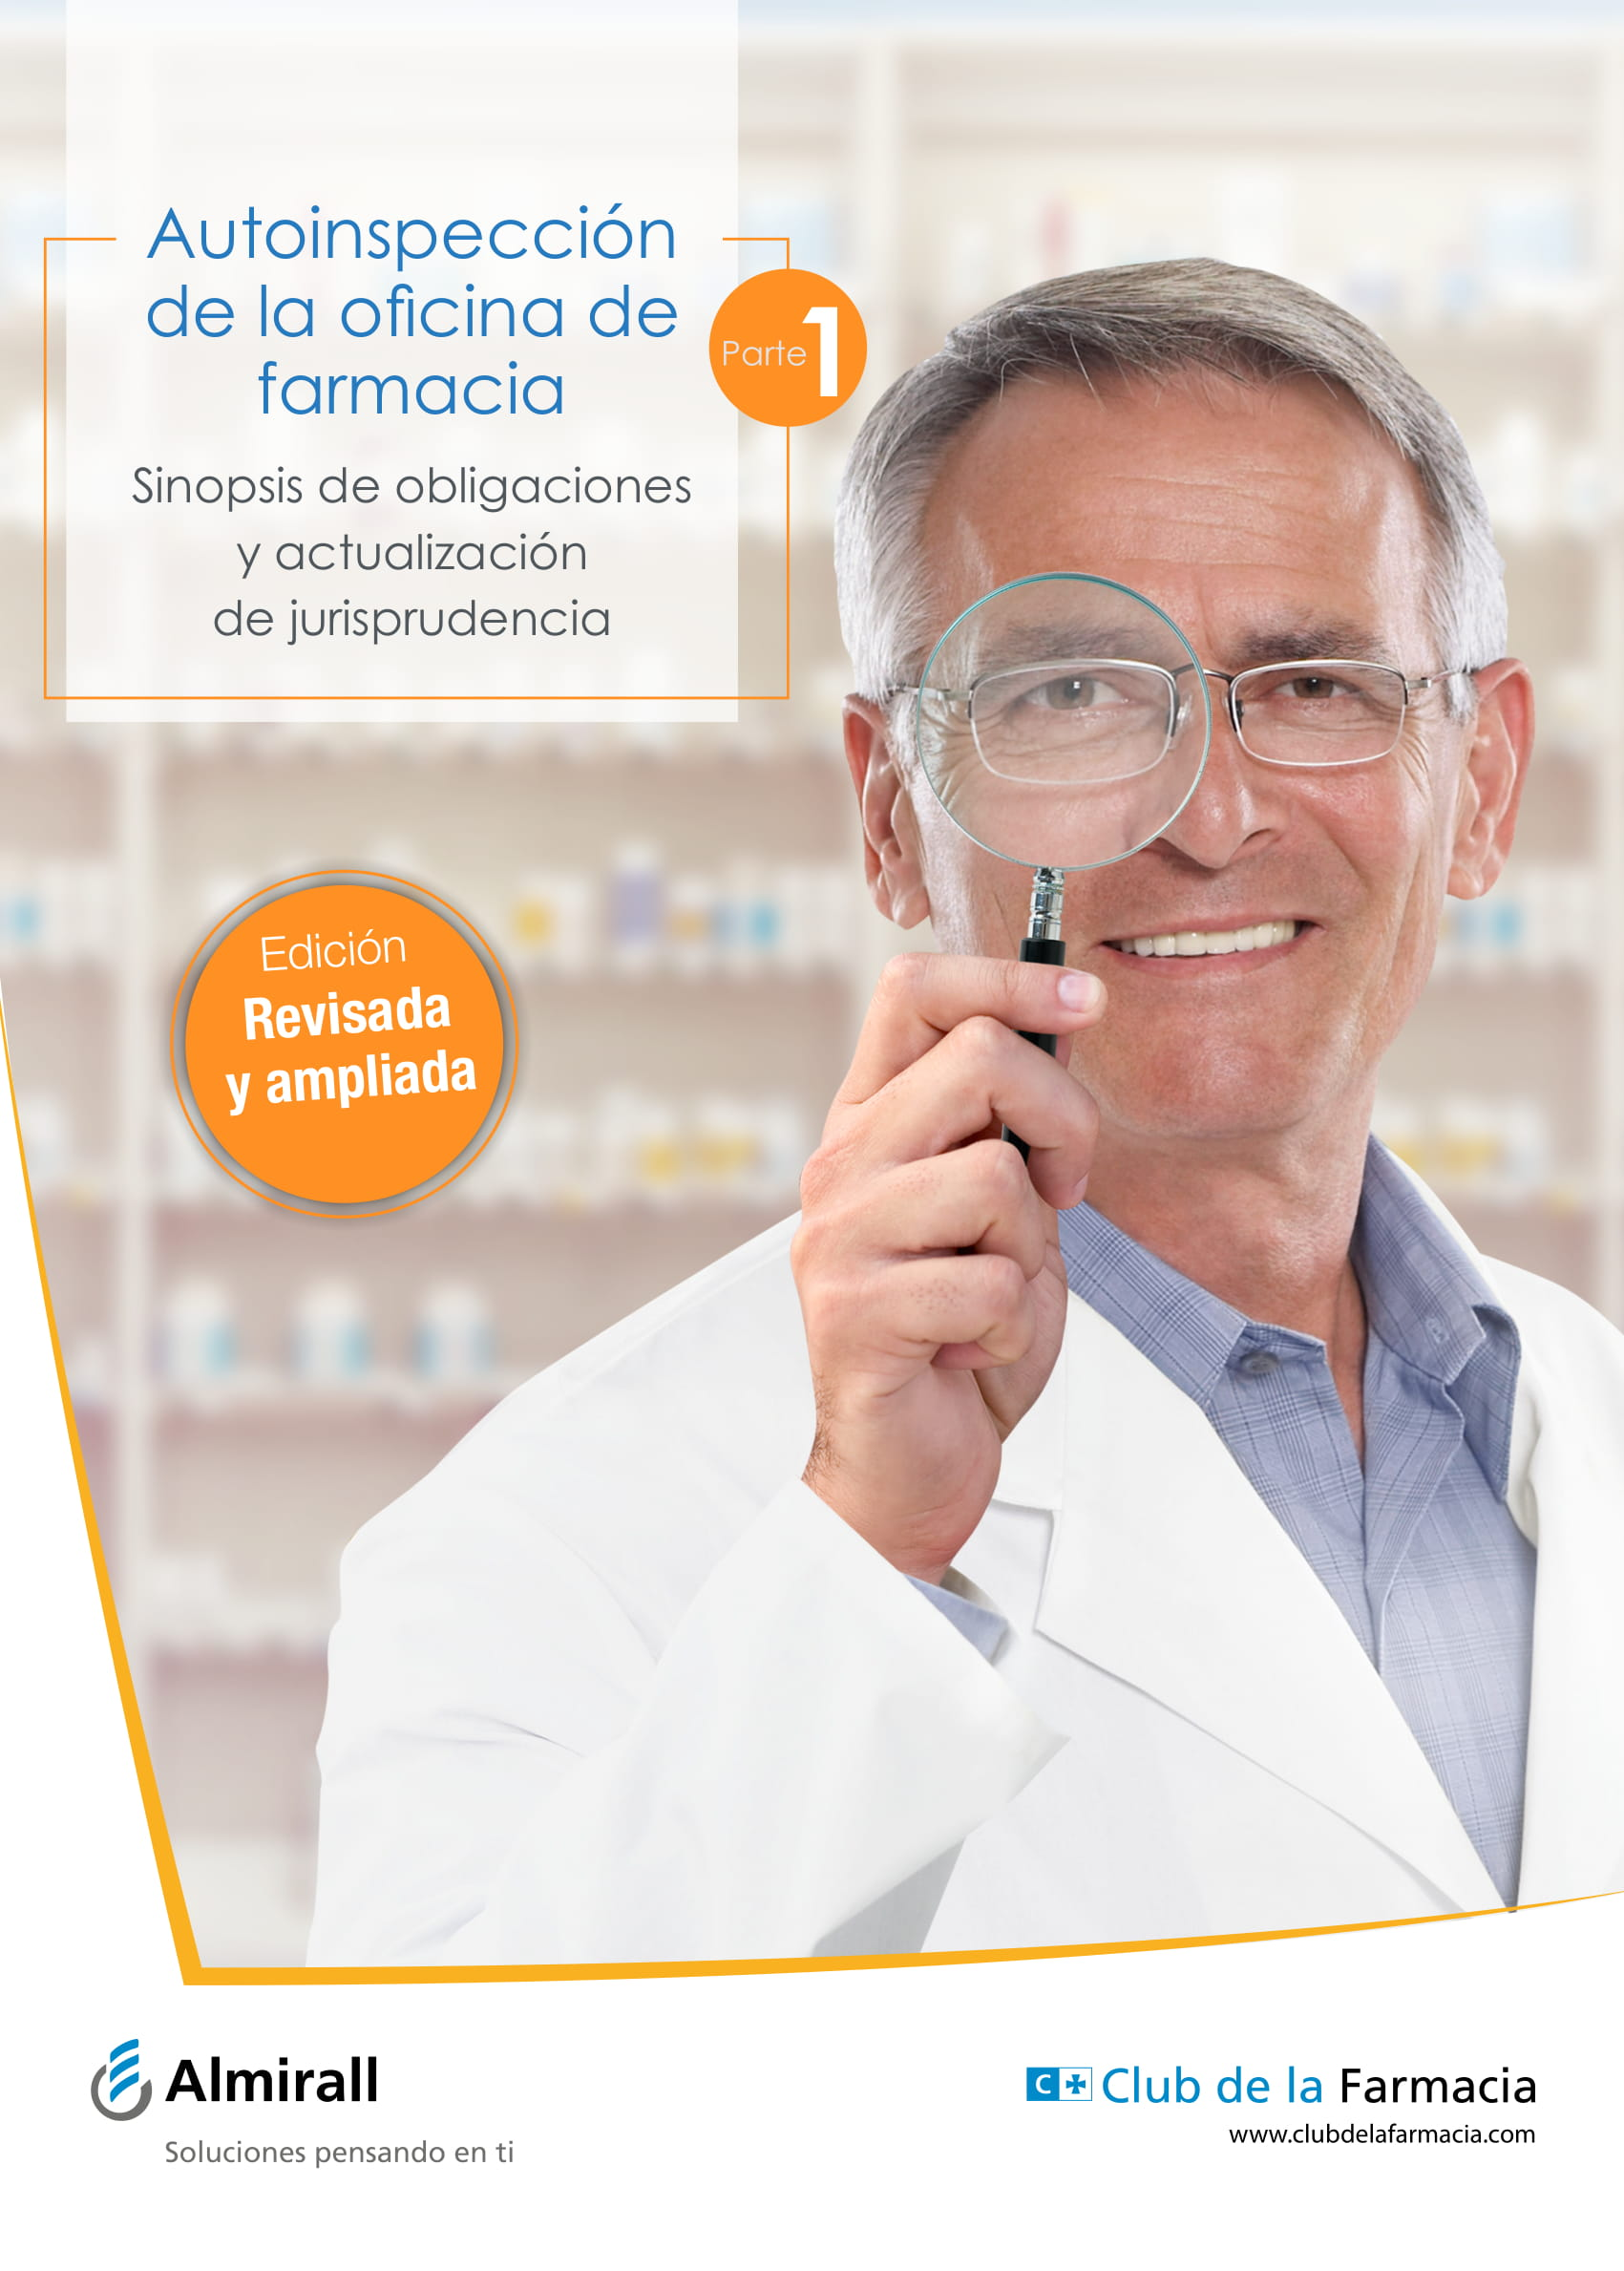 Ebooks-Club de la Farmacia-36.jpg